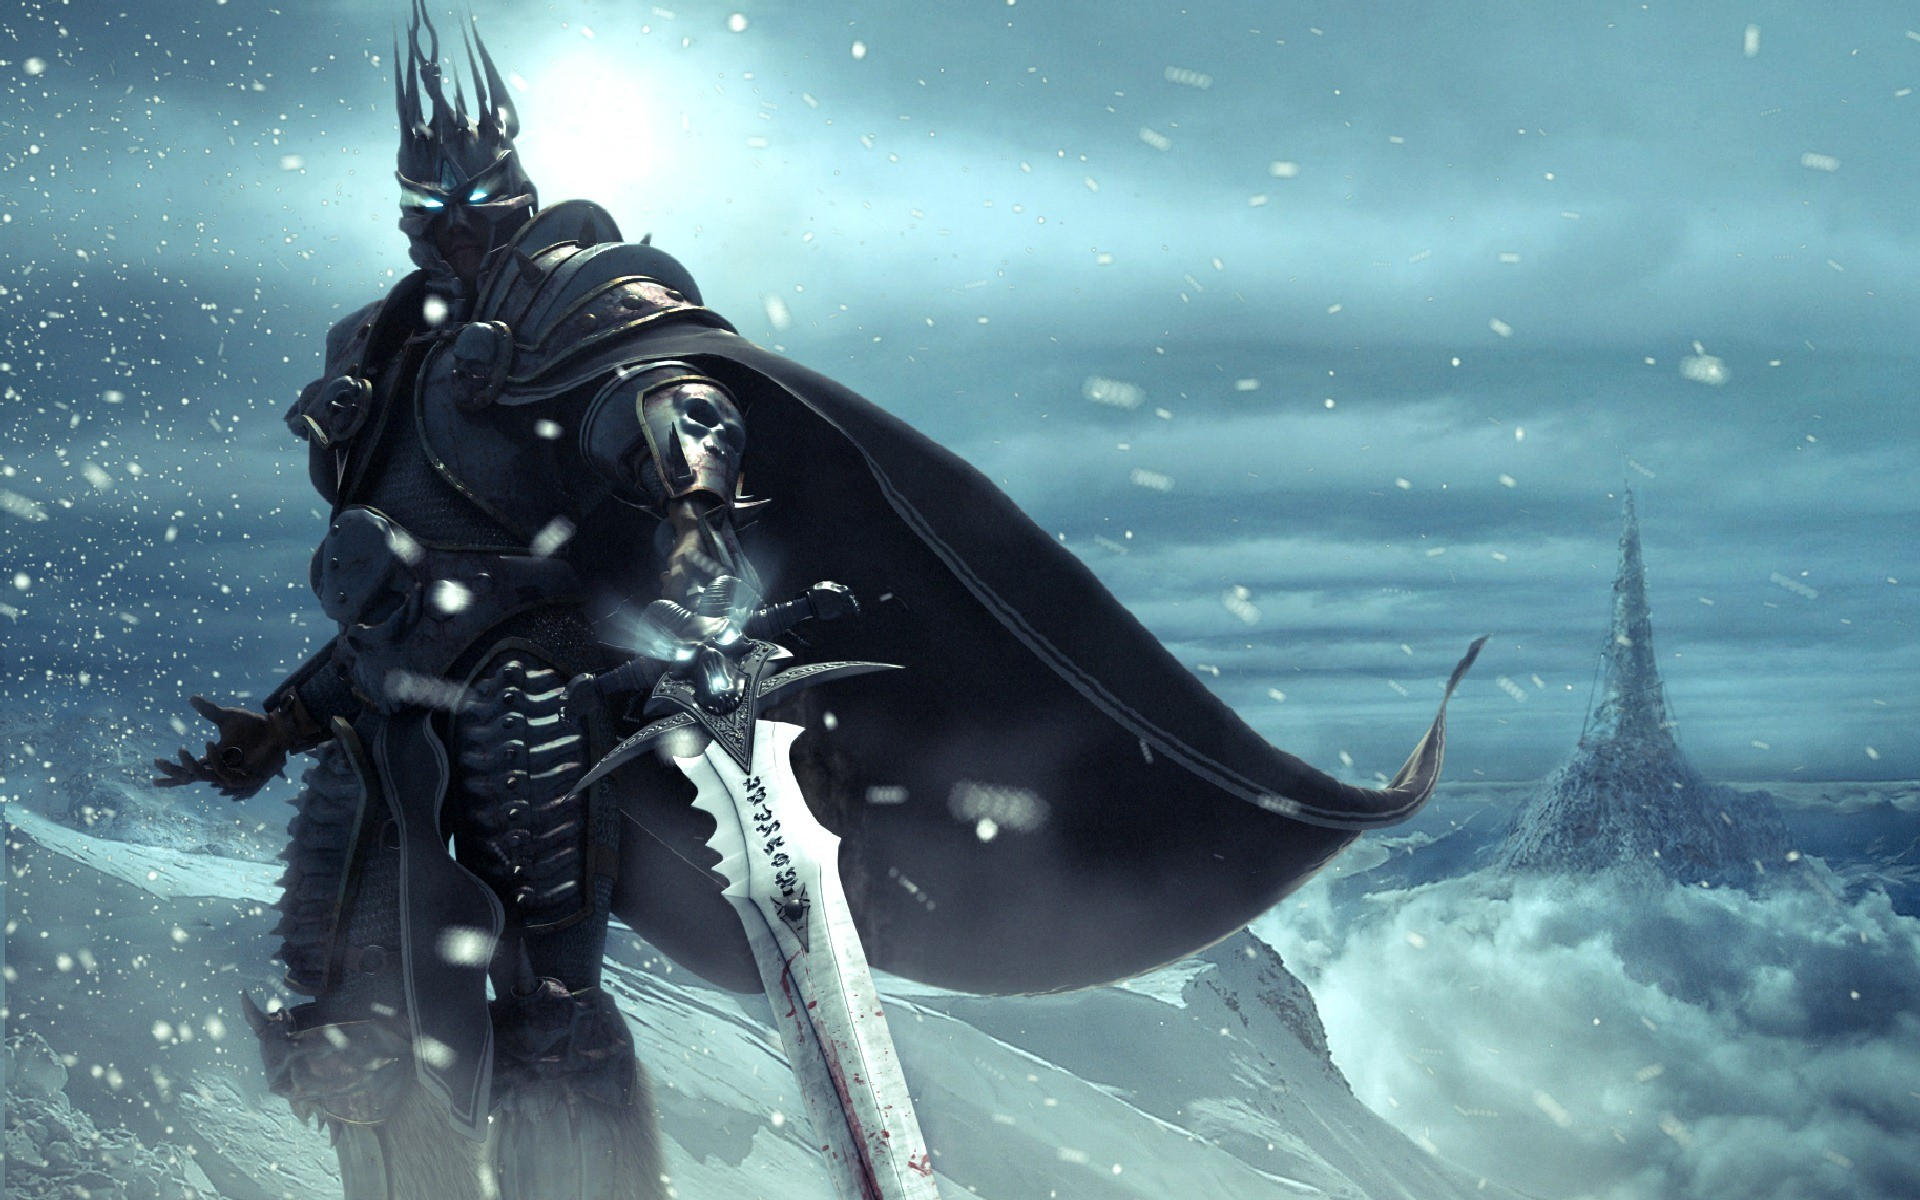 Of Warcraft Wallpaper Death Knight World of warcraft frost knight .